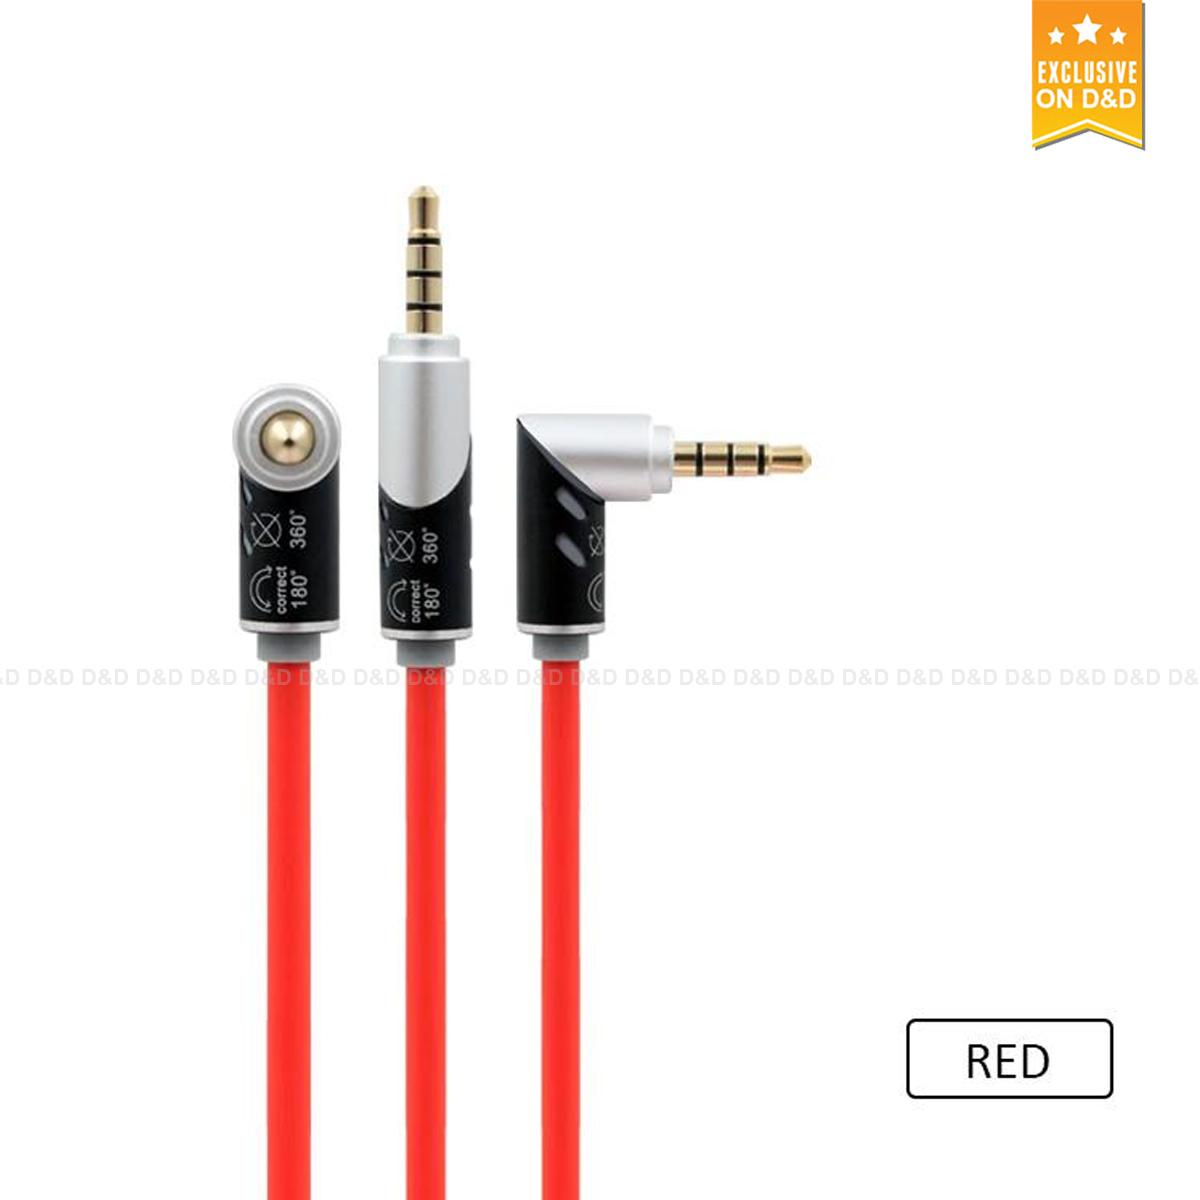 Audio Cable For Sale Hdmi Prices Brands Specs In Trs Wiring Further Different Size Headphone Jacks On Philippines